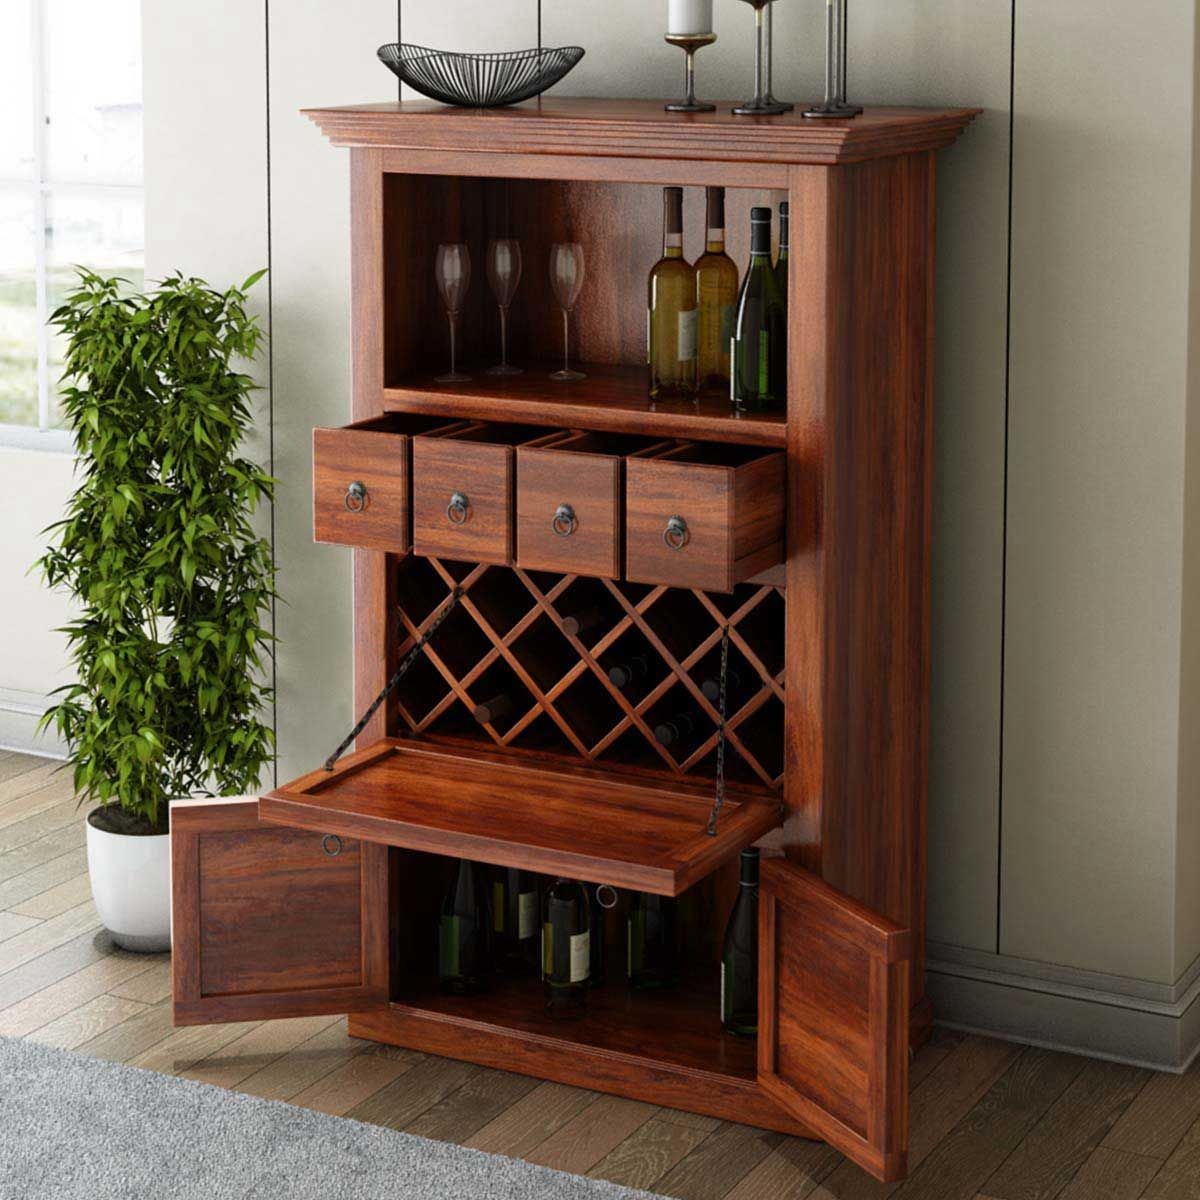 Alabama spacious handcrafted solid wood bar cabinet with wine storage